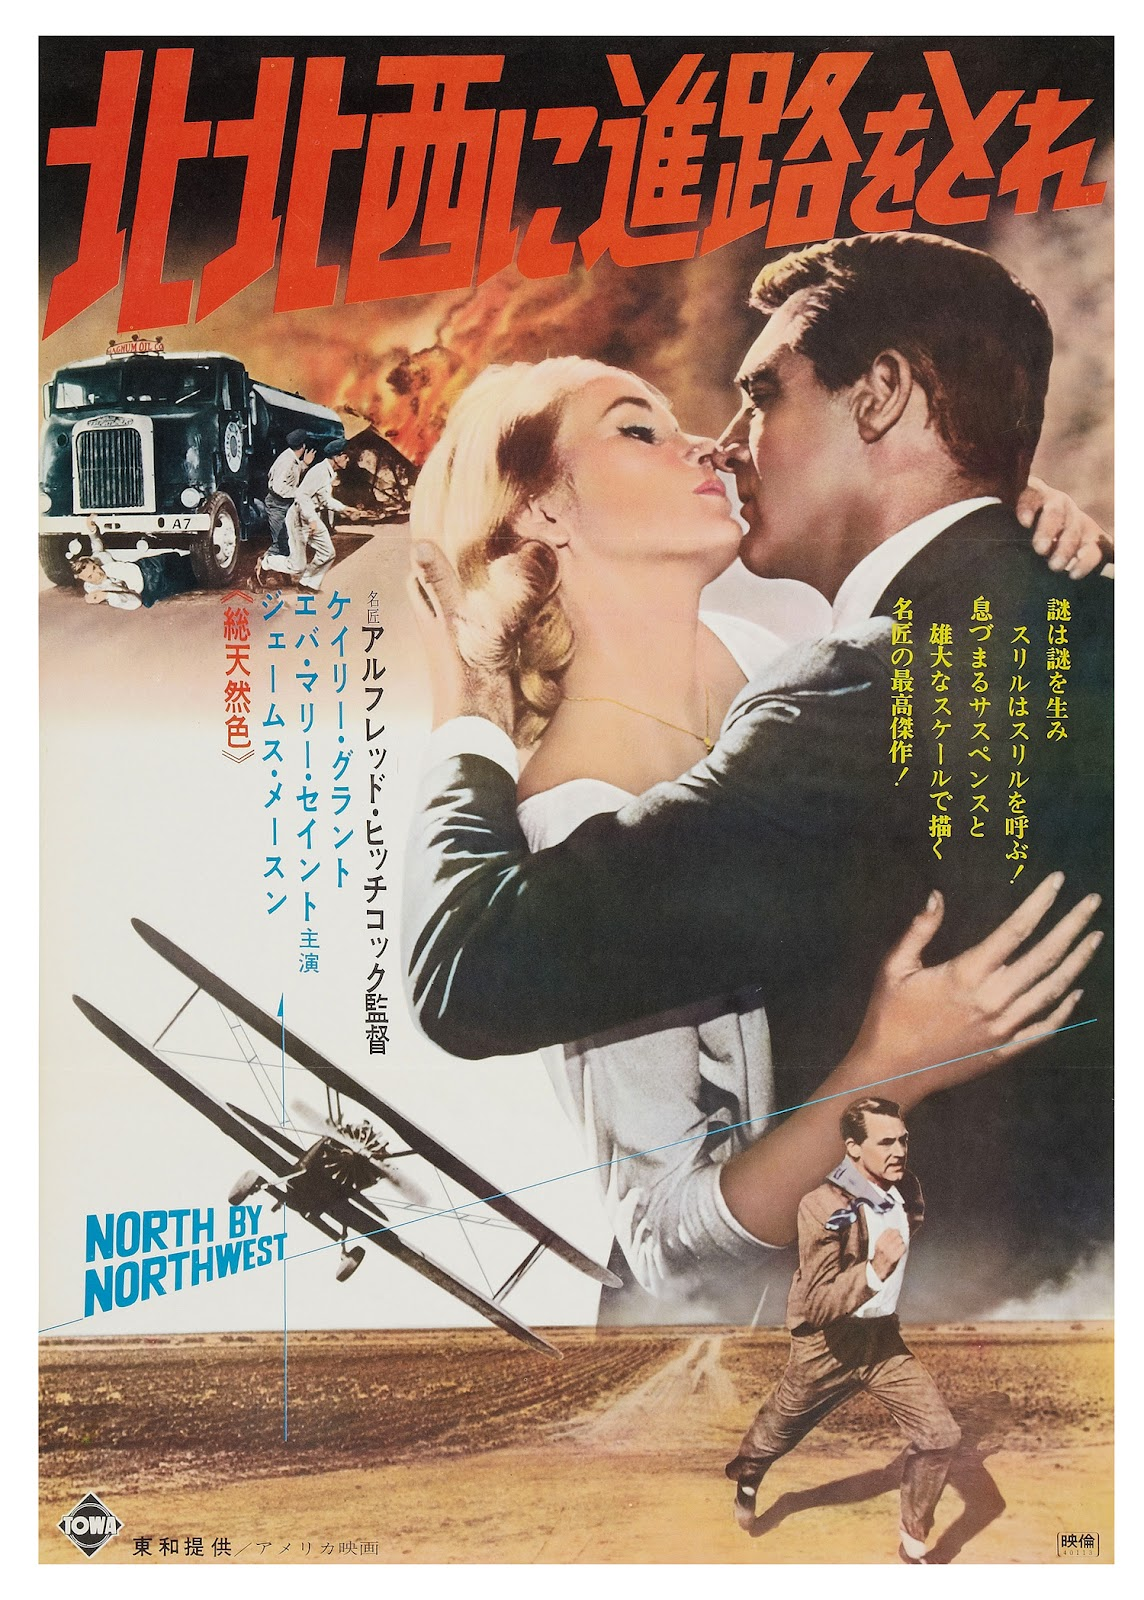 Japanese poster for North by Northwest, 1965.